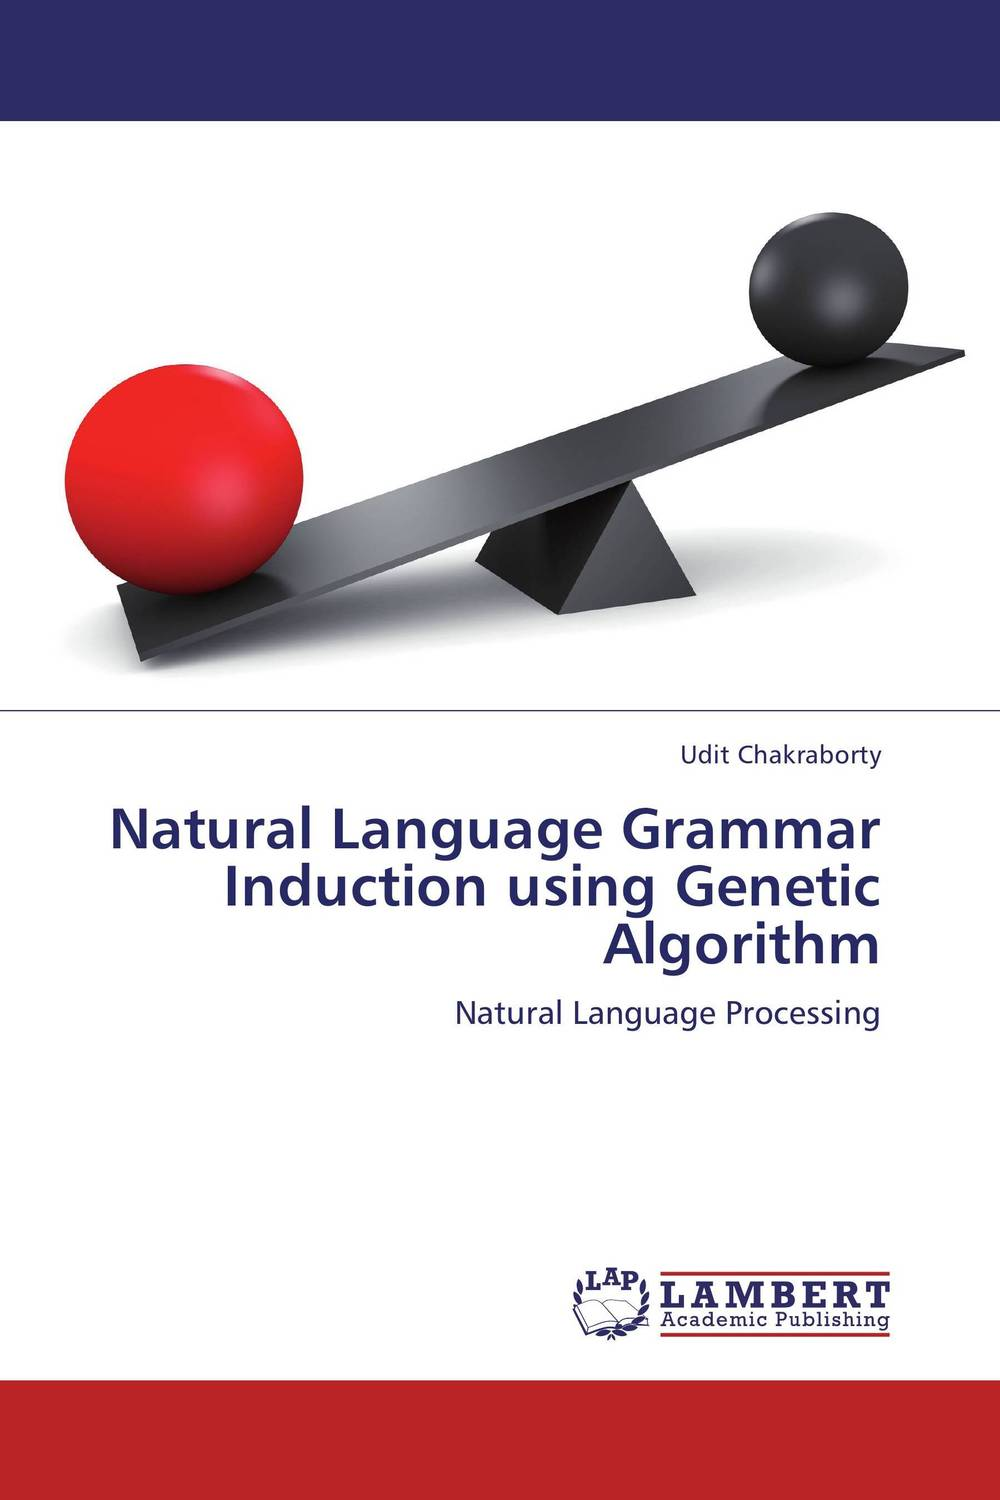 Natural Language Grammar Induction using Genetic Algorithm software effort estimation using artificial neural networks